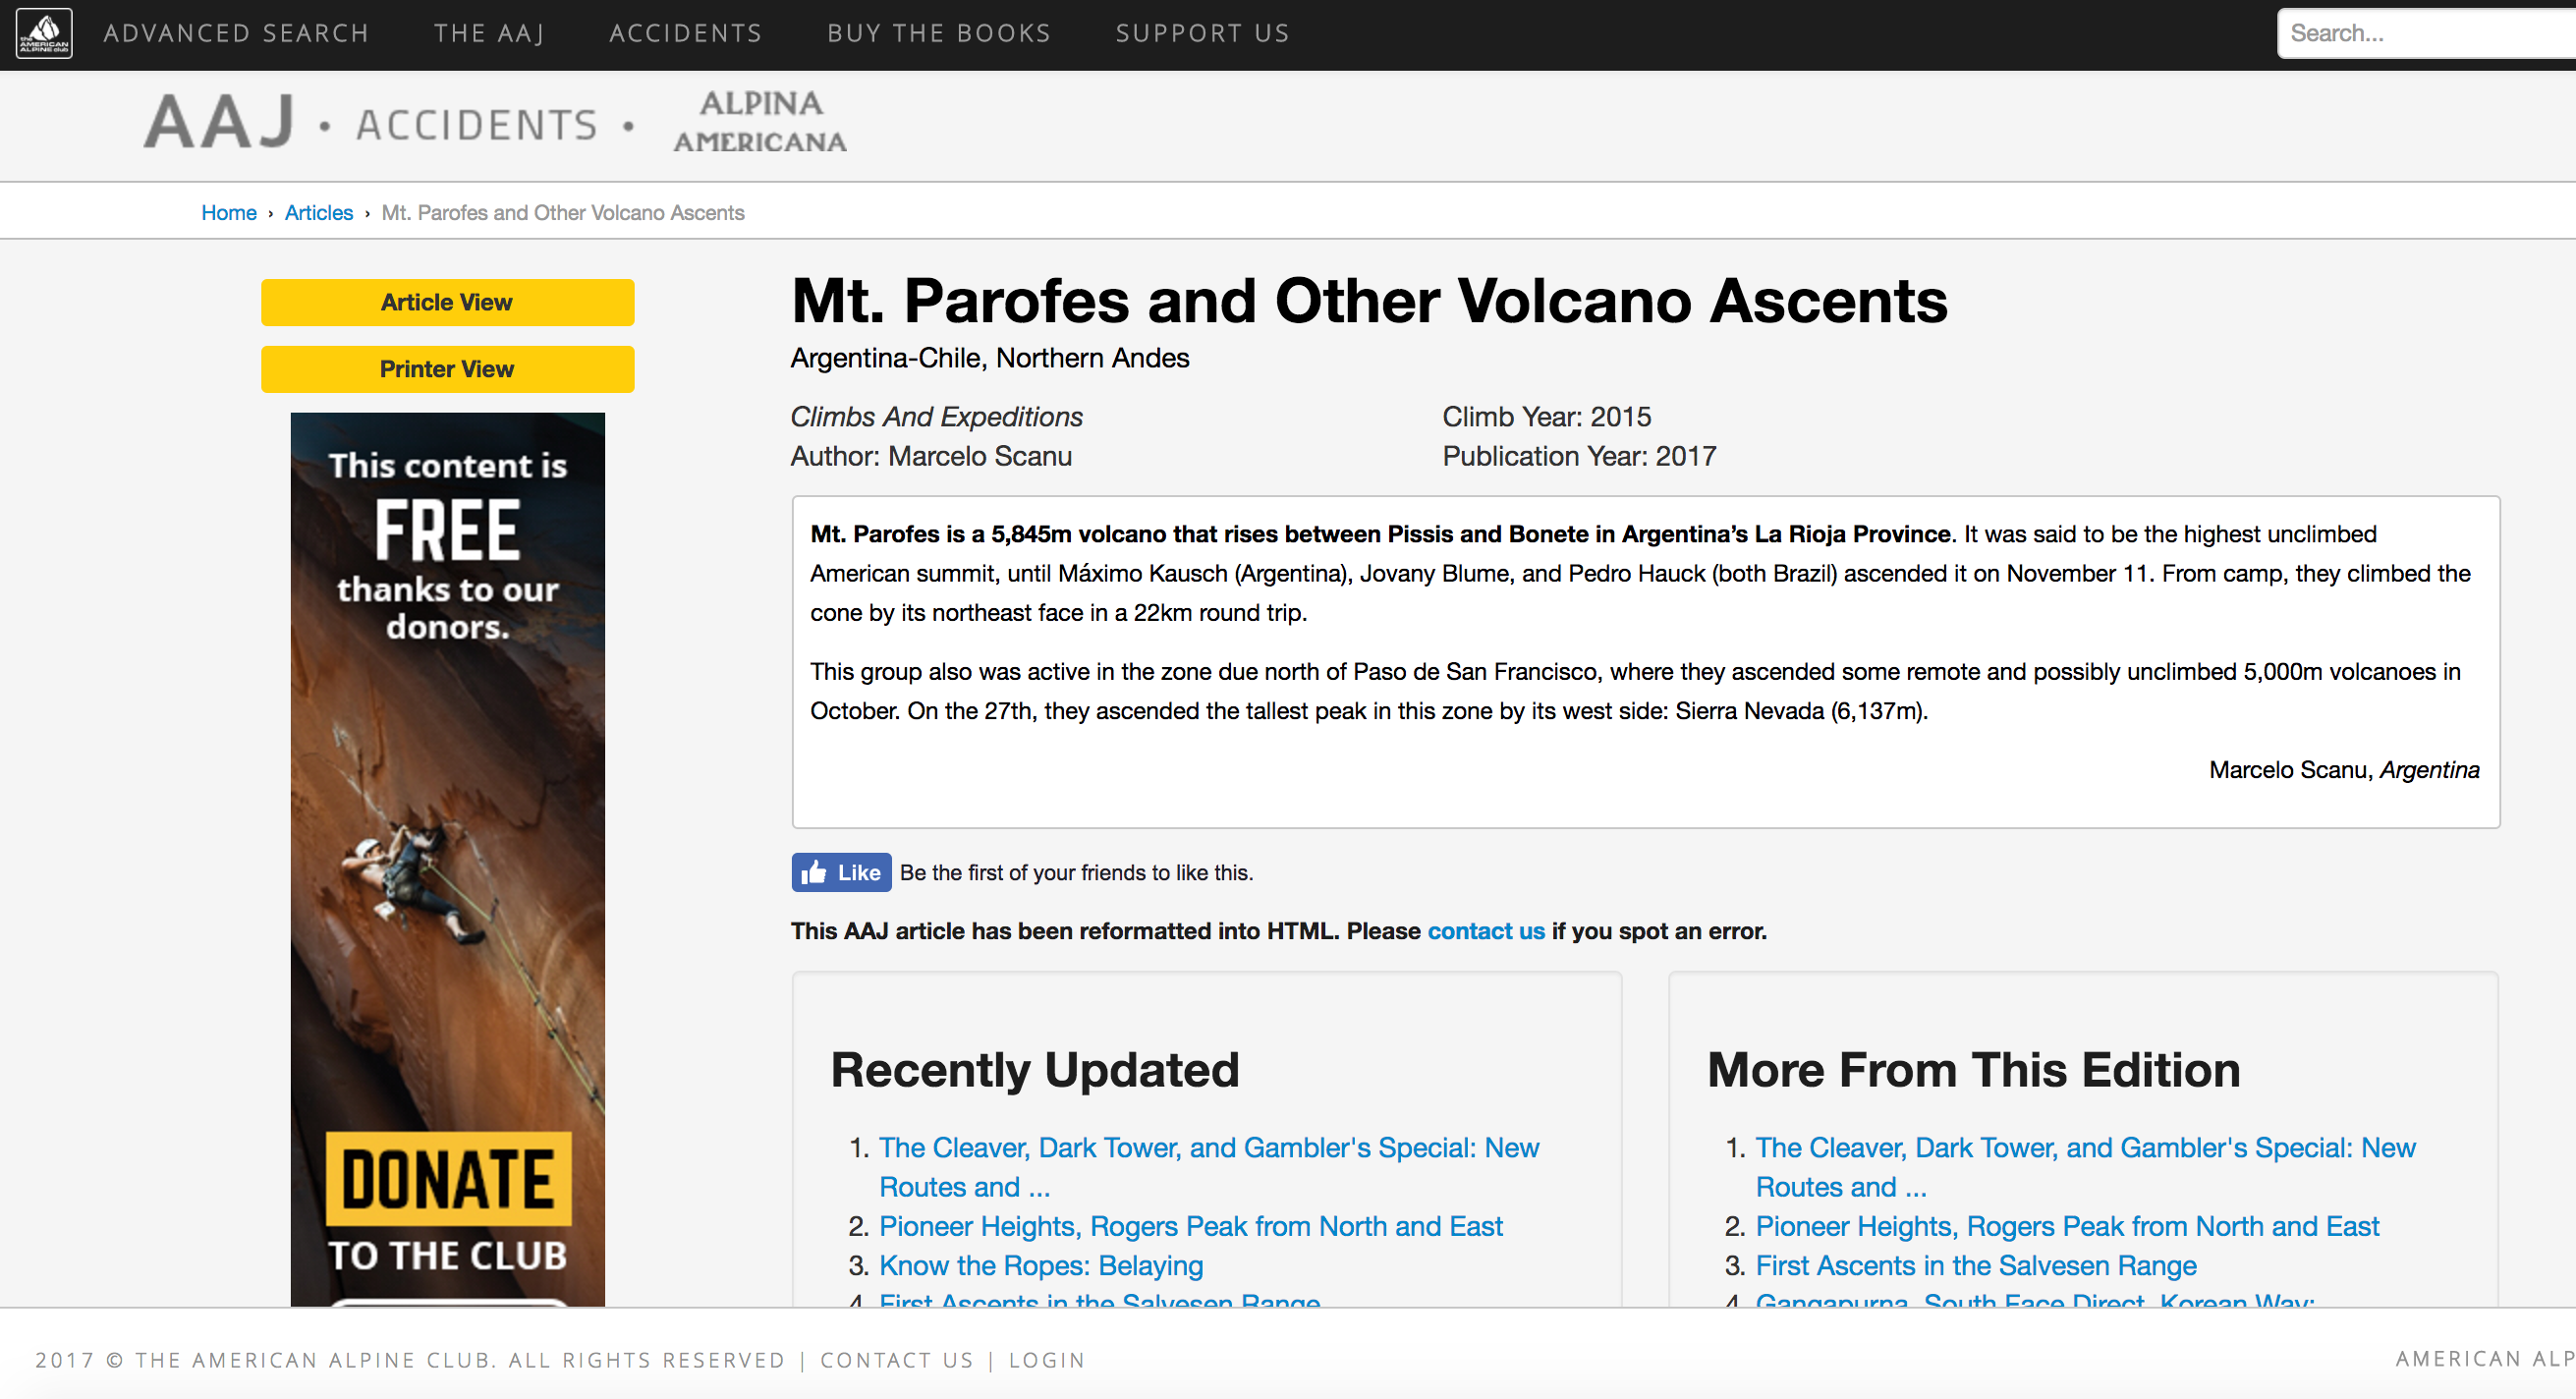 mt-parofes-and-other-volcano-ascents